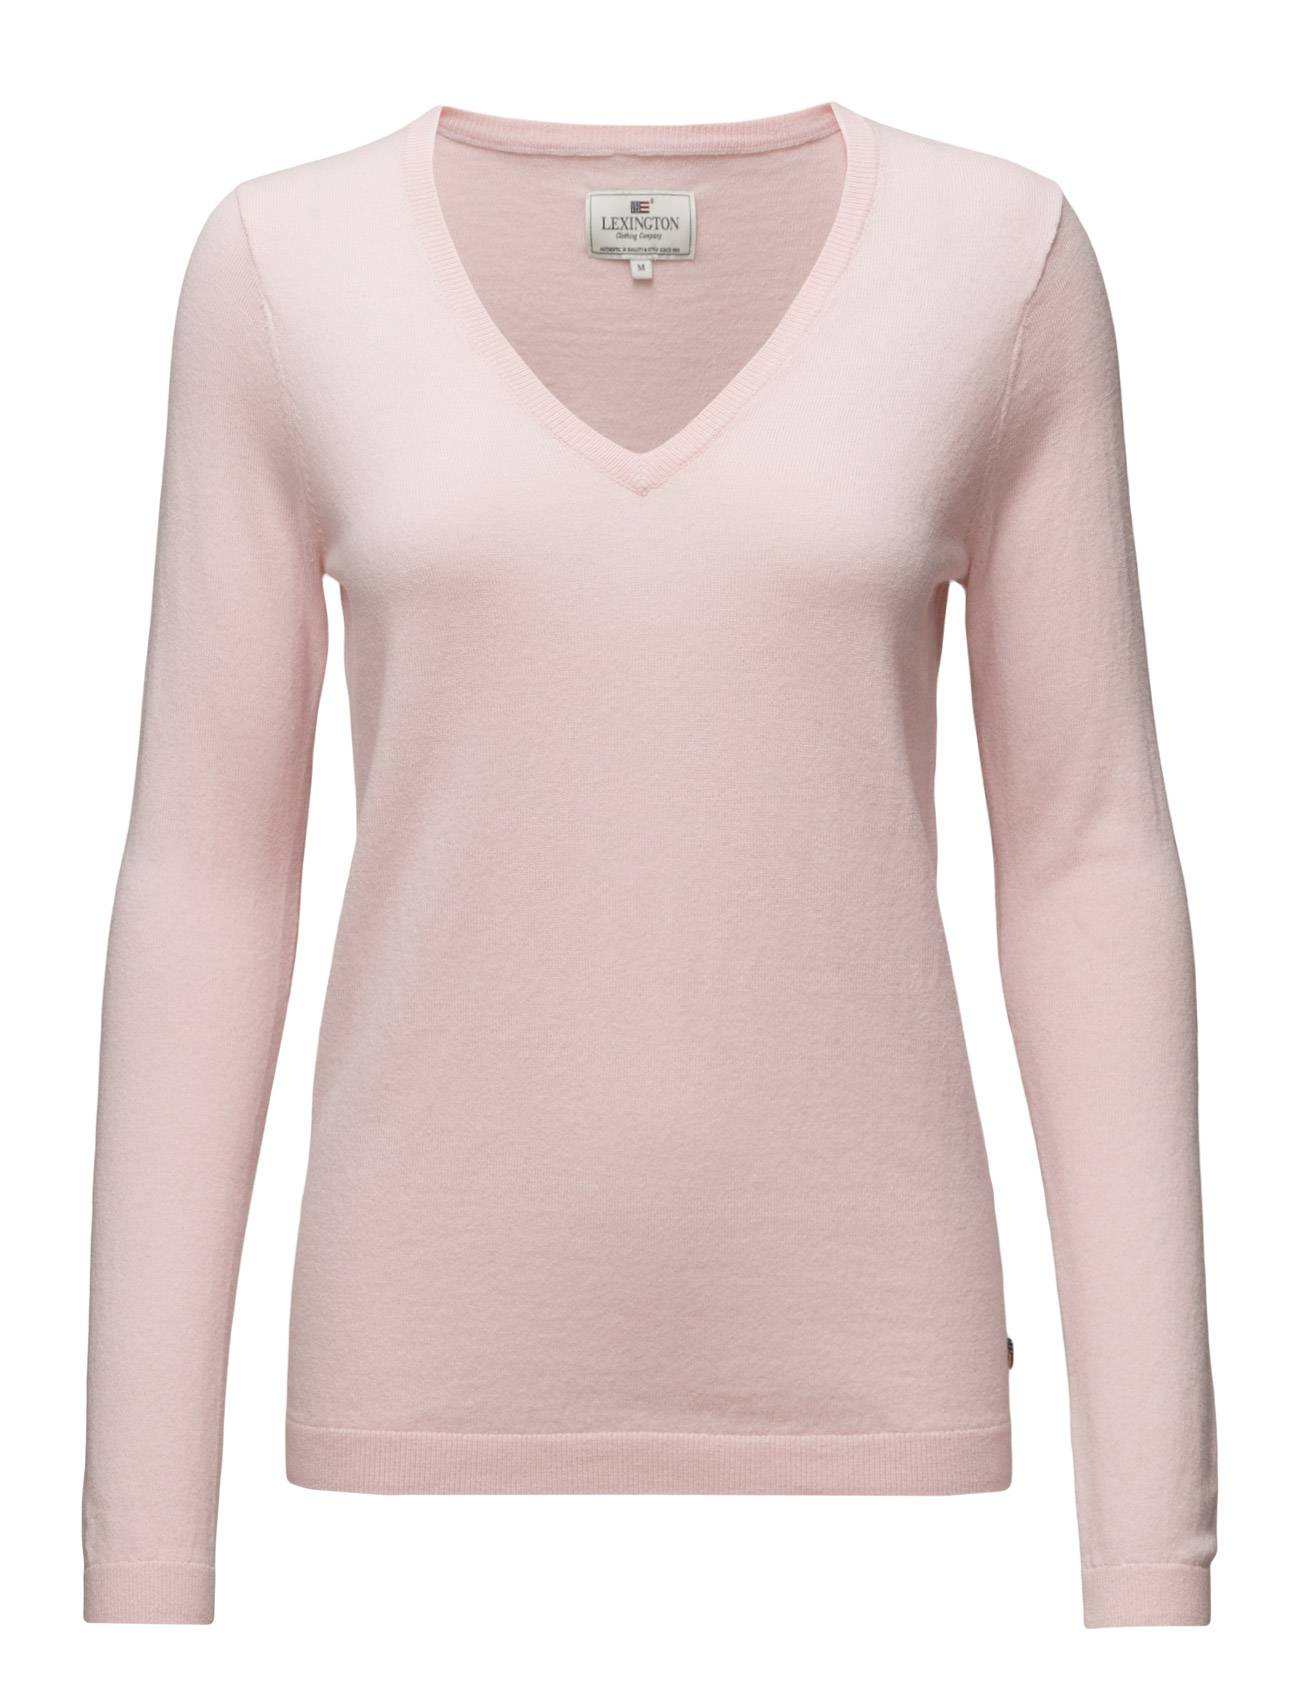 Lexington Company Madaleine V-Neck Sweater